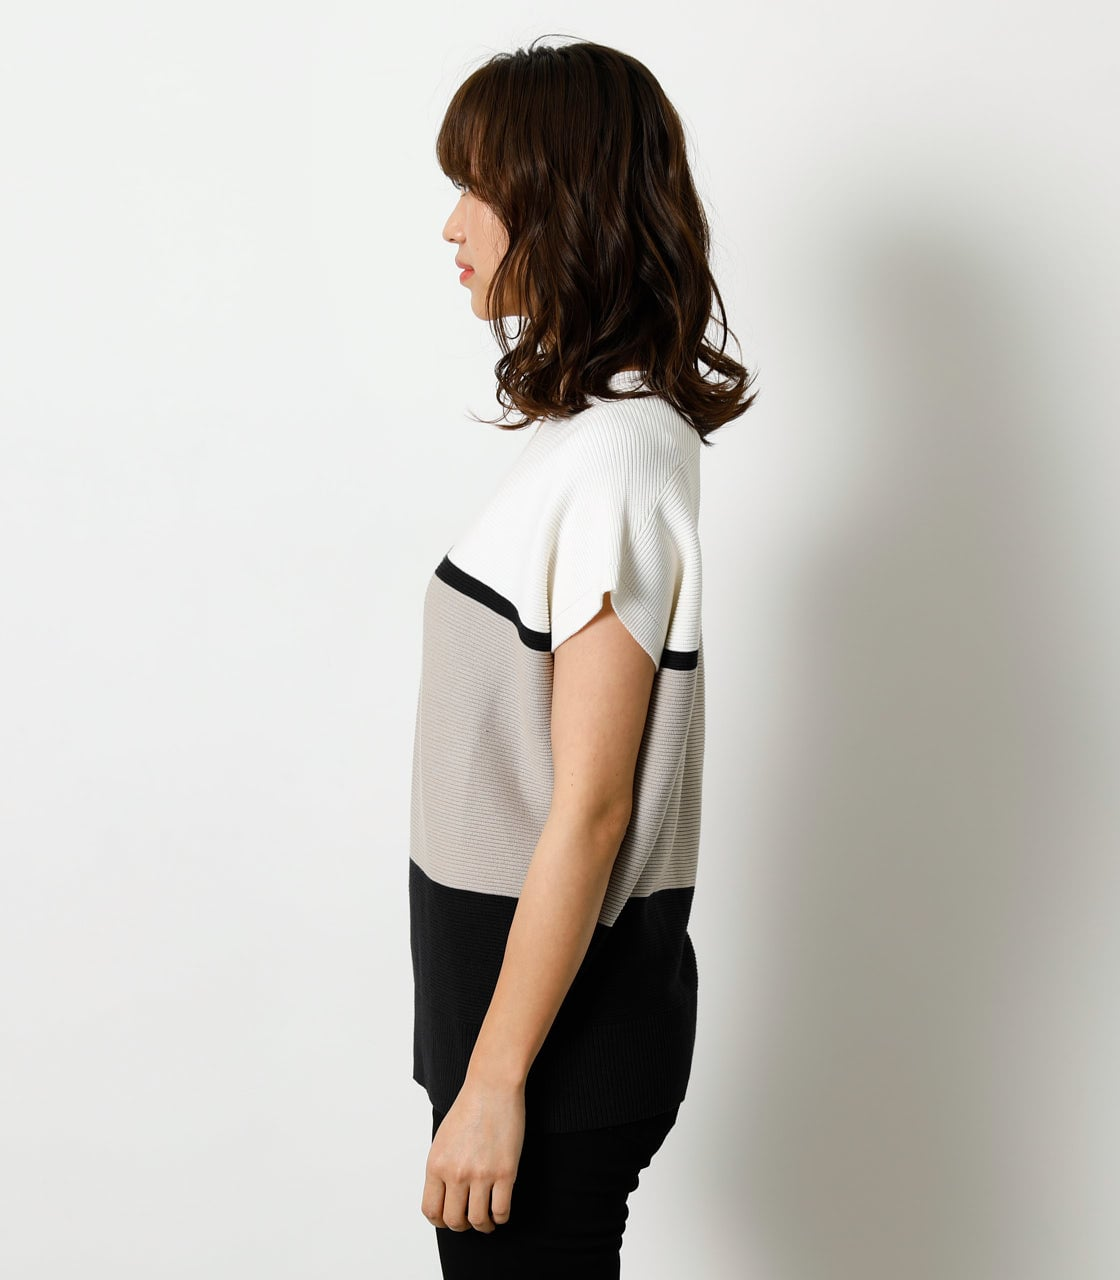 LOOSE PANEL KNIT TOP/ルーズパネルニットトップ 詳細画像 柄BEG 5